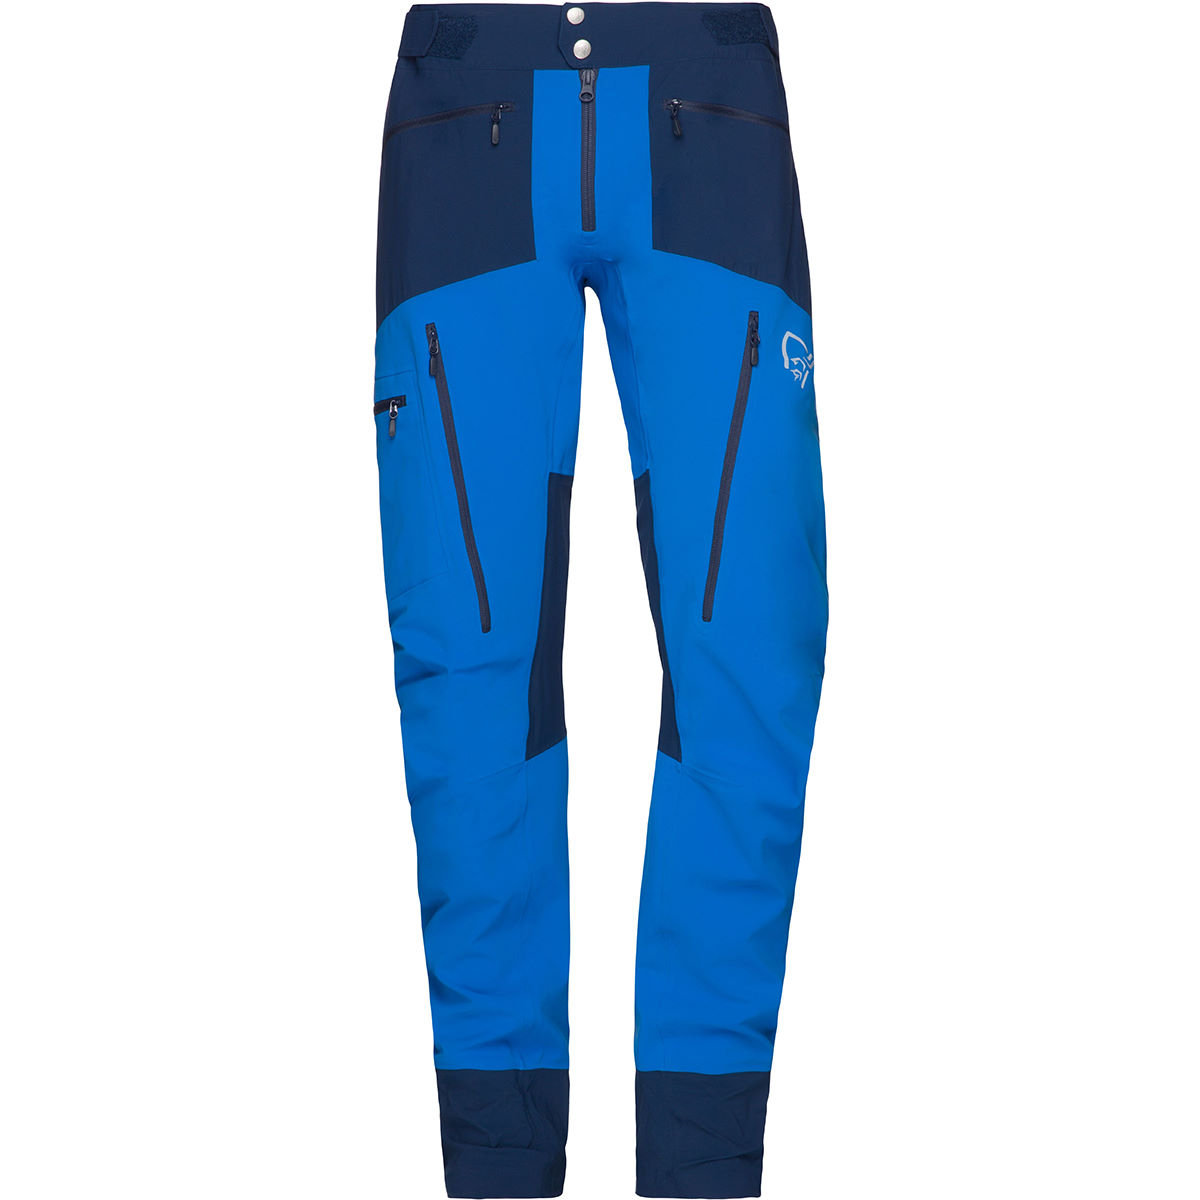 Norrøna Norrøna fjørå Windstopper Pants   Trousers